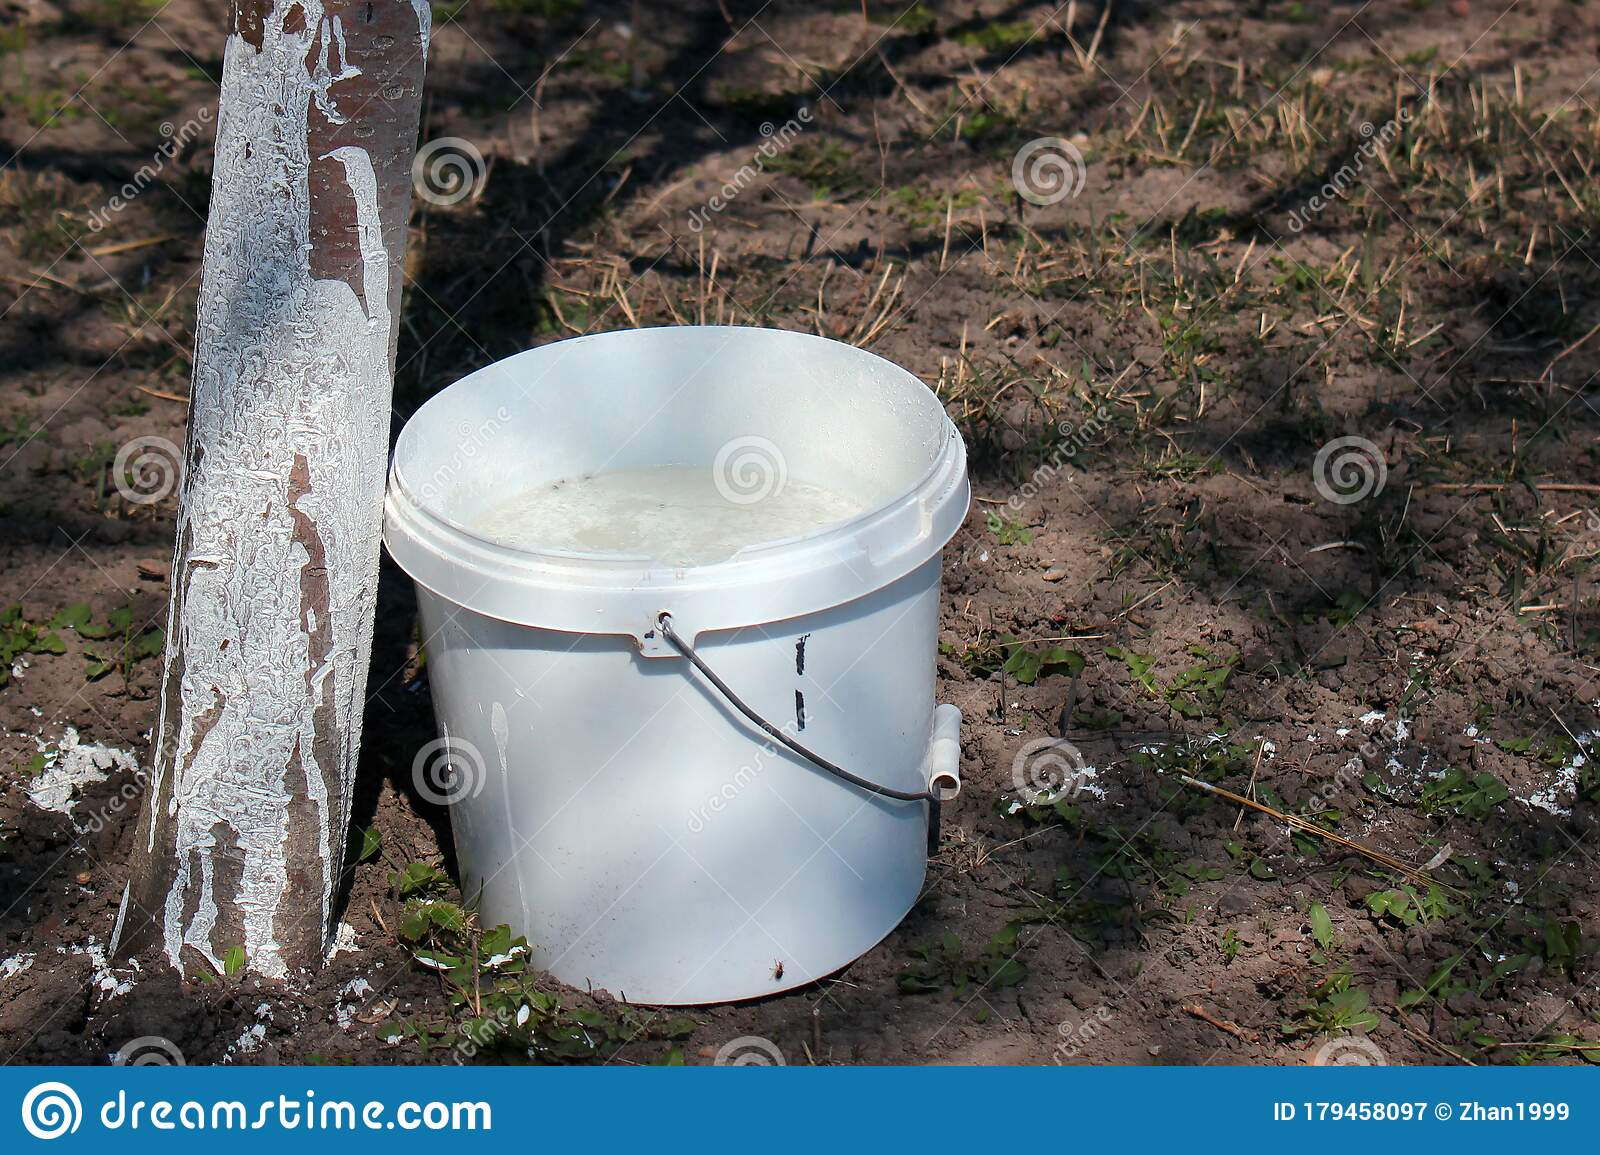 Whitewashing Fruit Trees Bucket With White Paint In A Garden Stock Image Image Of Farmer Preventive 179458097